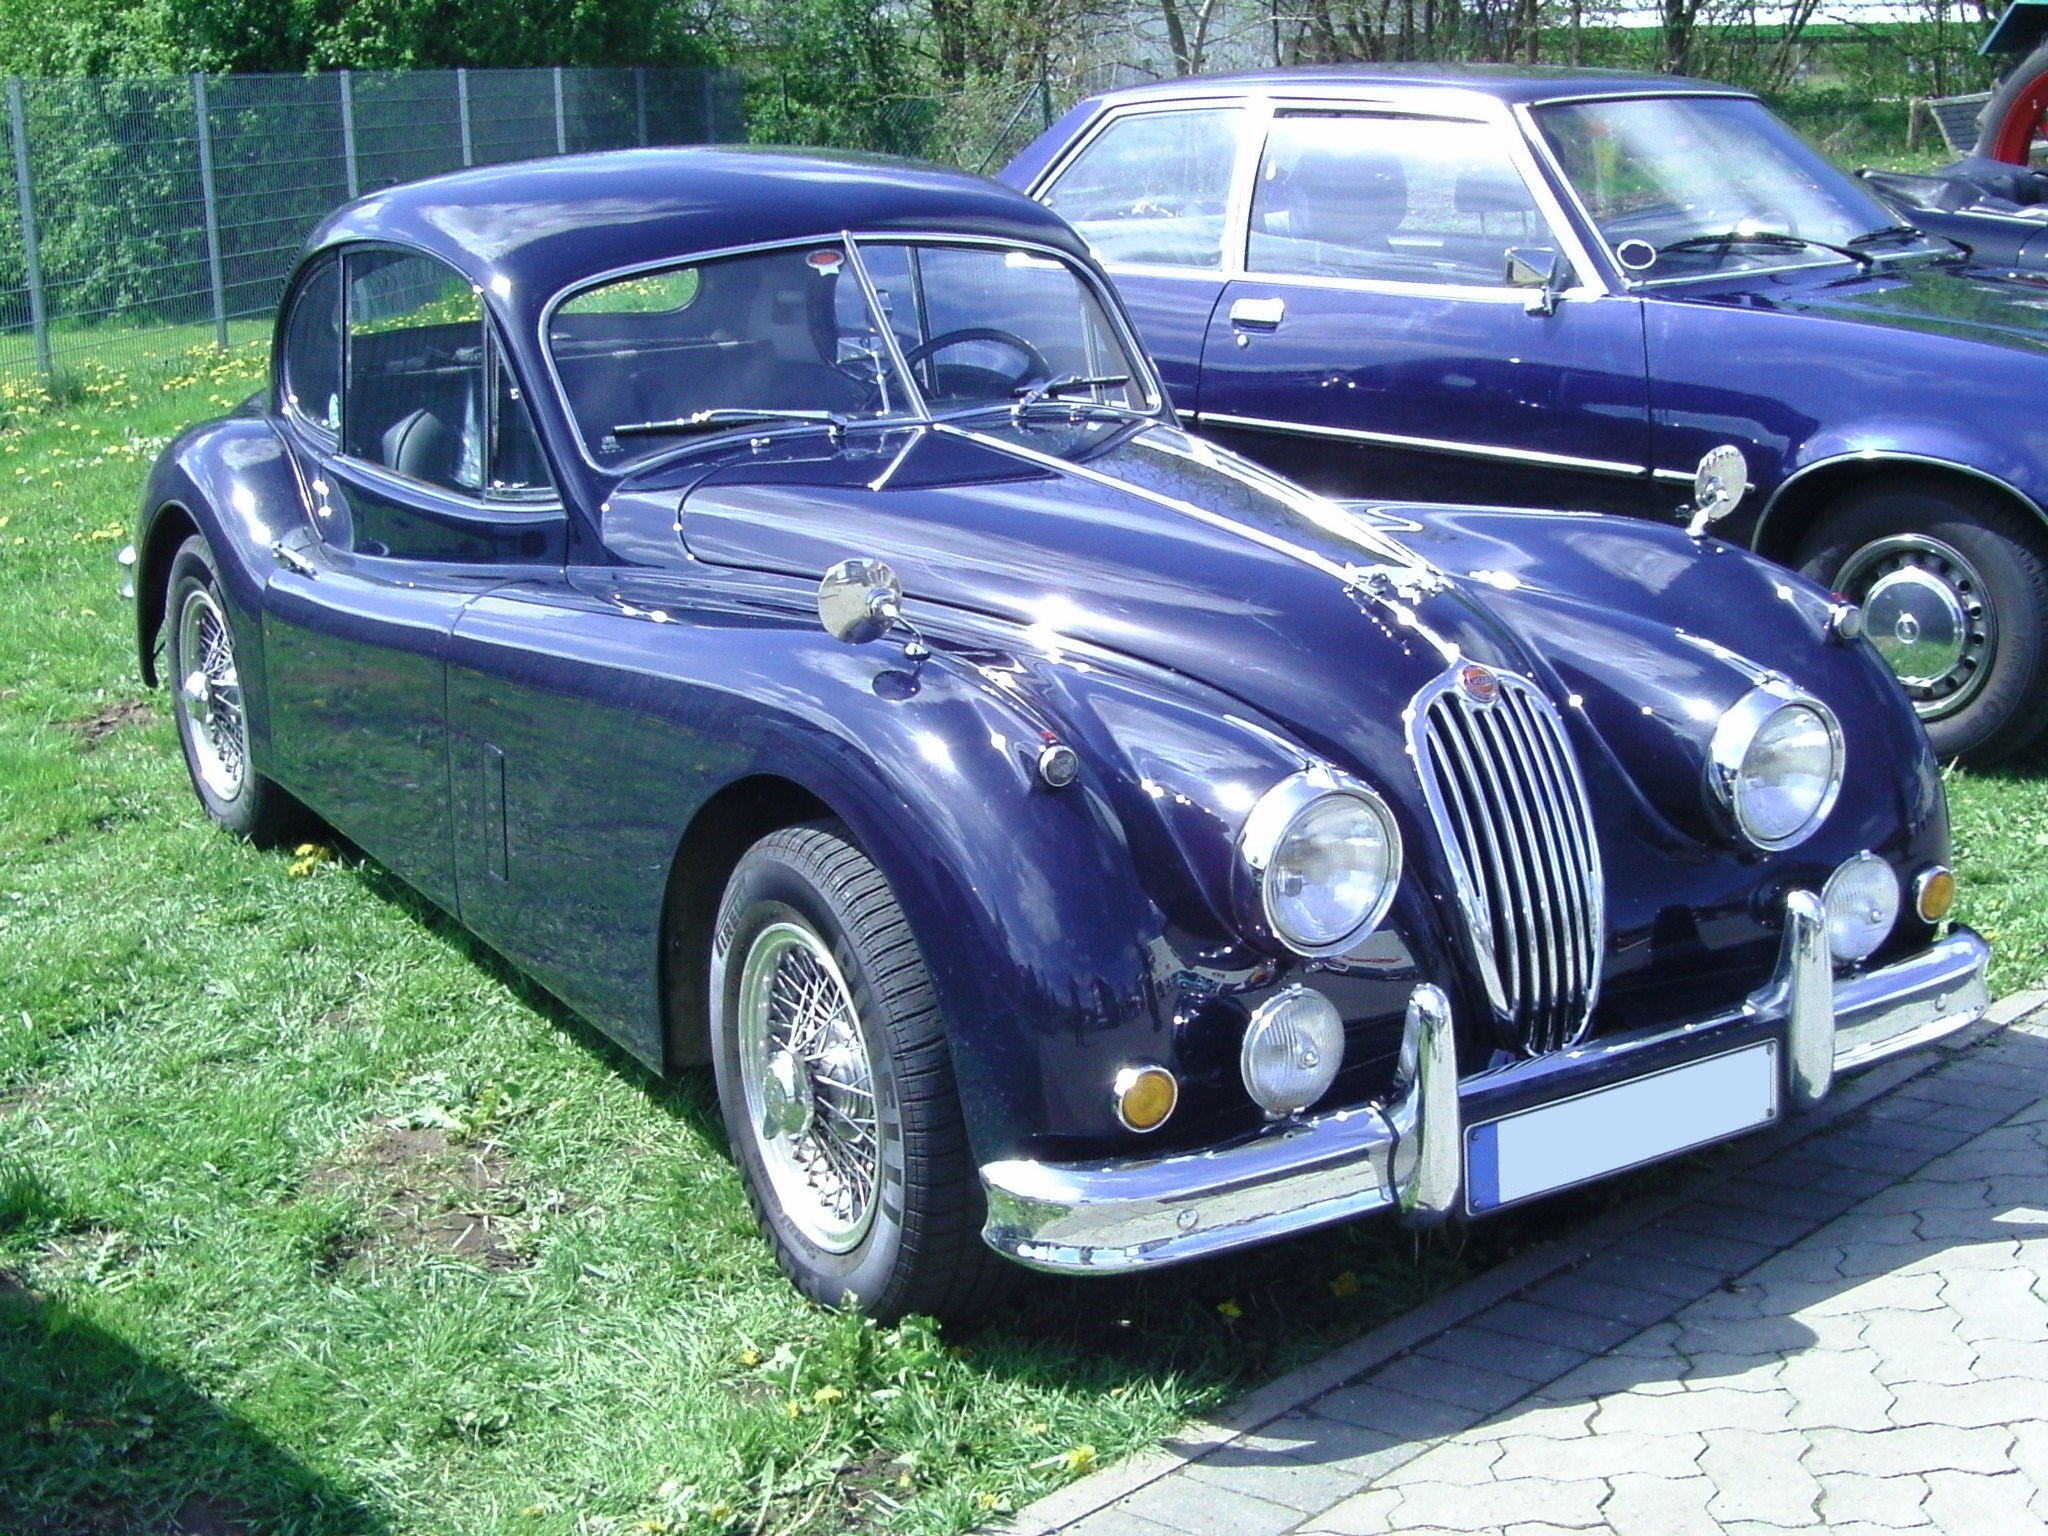 file:jaguar xk140 (2010) - wikimedia commons, Wiring diagram